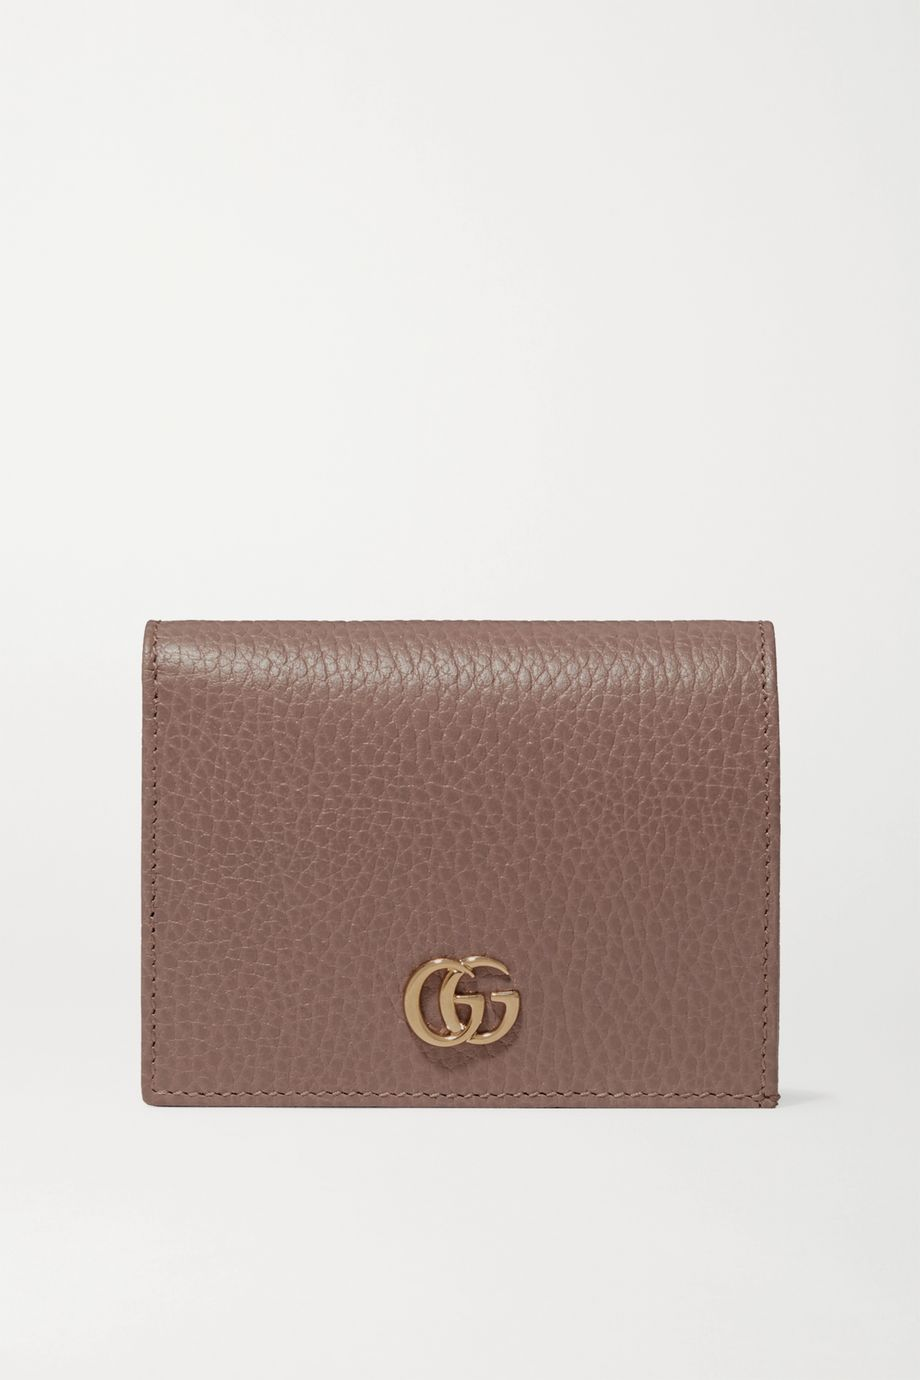 Gucci + NET SUSTAIN Marmont Petite textured-leather wallet